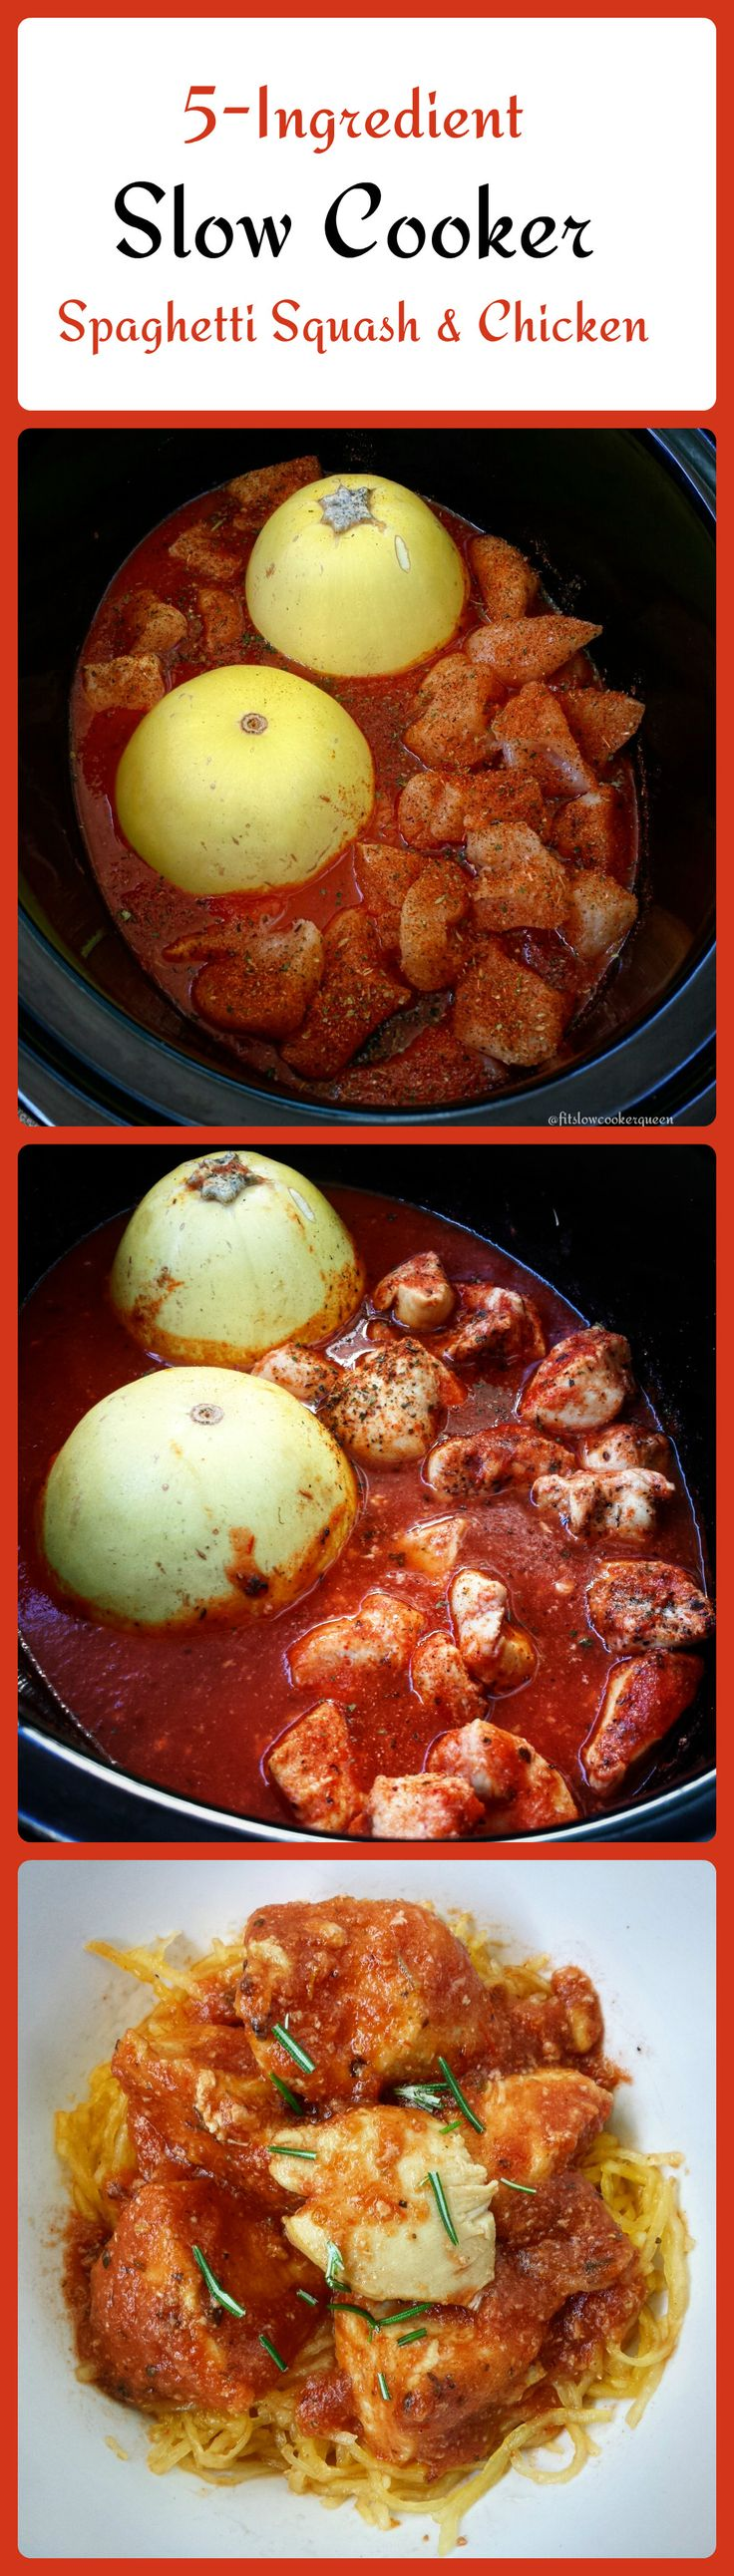 Spaghetti squash and chicken cook together along with your favorite marinara/pasta sauce in this easy slow cooker meal. This is a great low-carb alternative to pasta night. You can substitute meatballs for the chicken breasts.